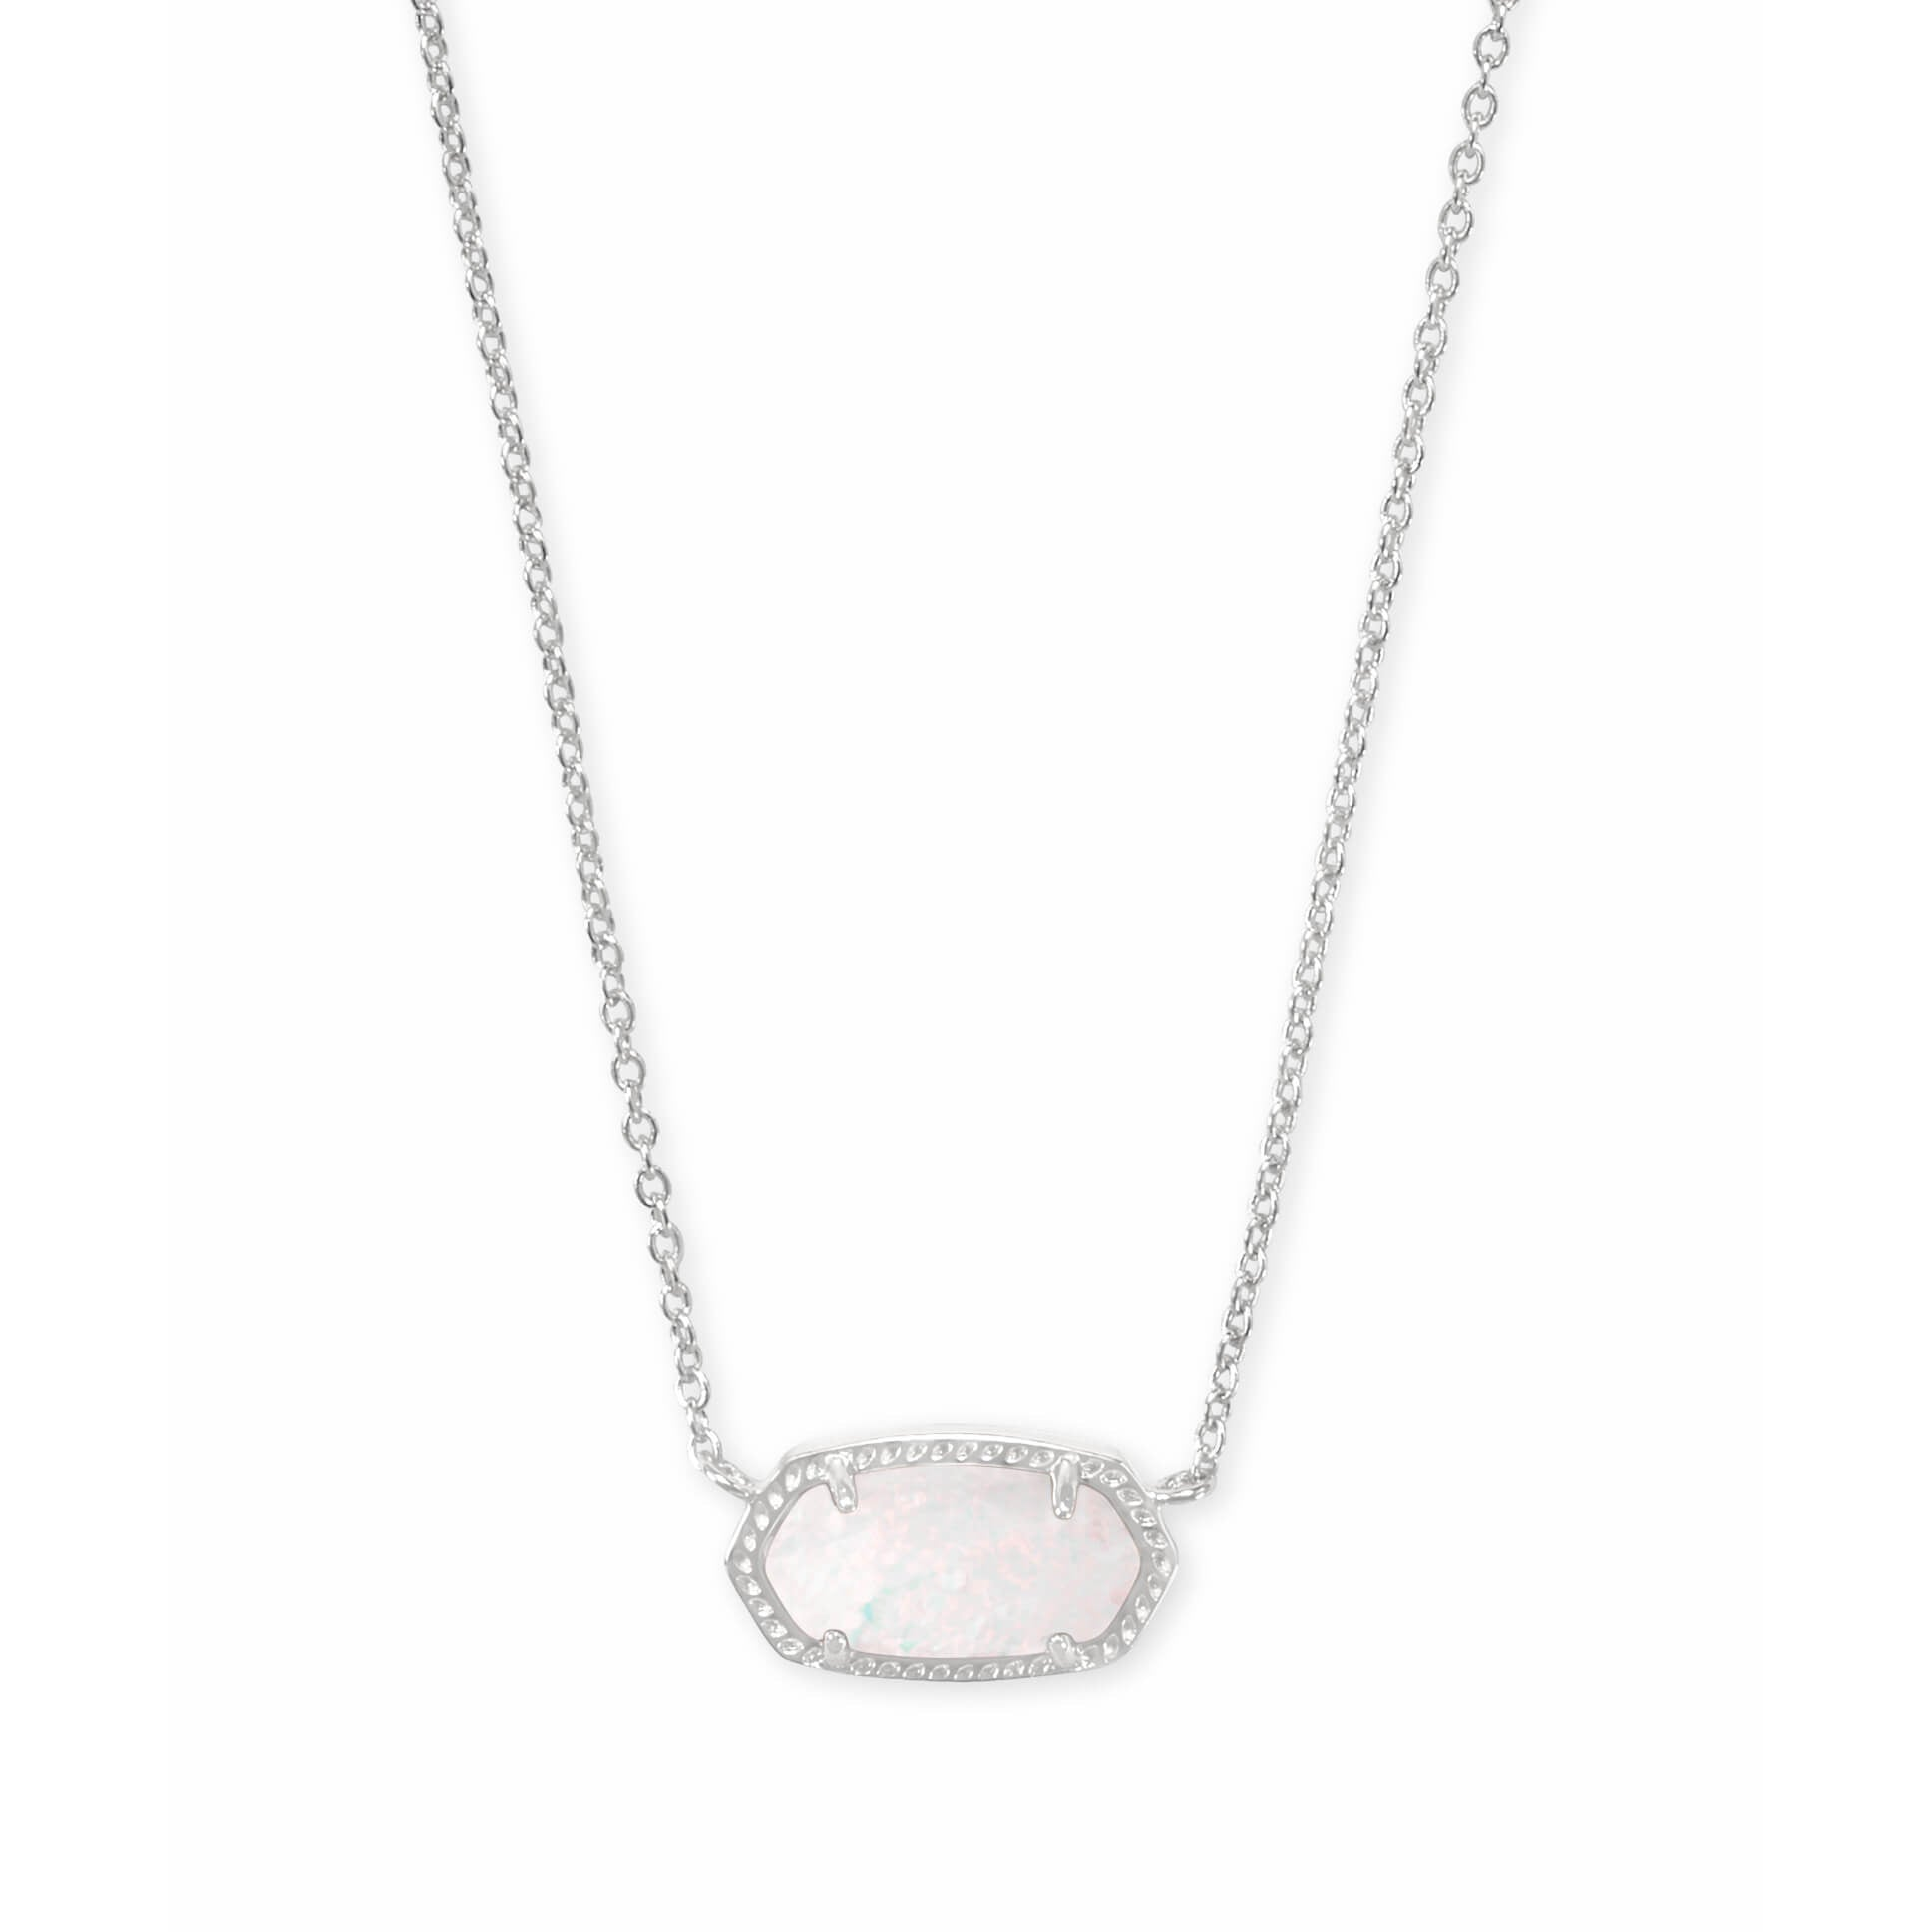 Kendra Scott - Elisa Silver Pendant Necklace In White Kyocera Opal, Front View